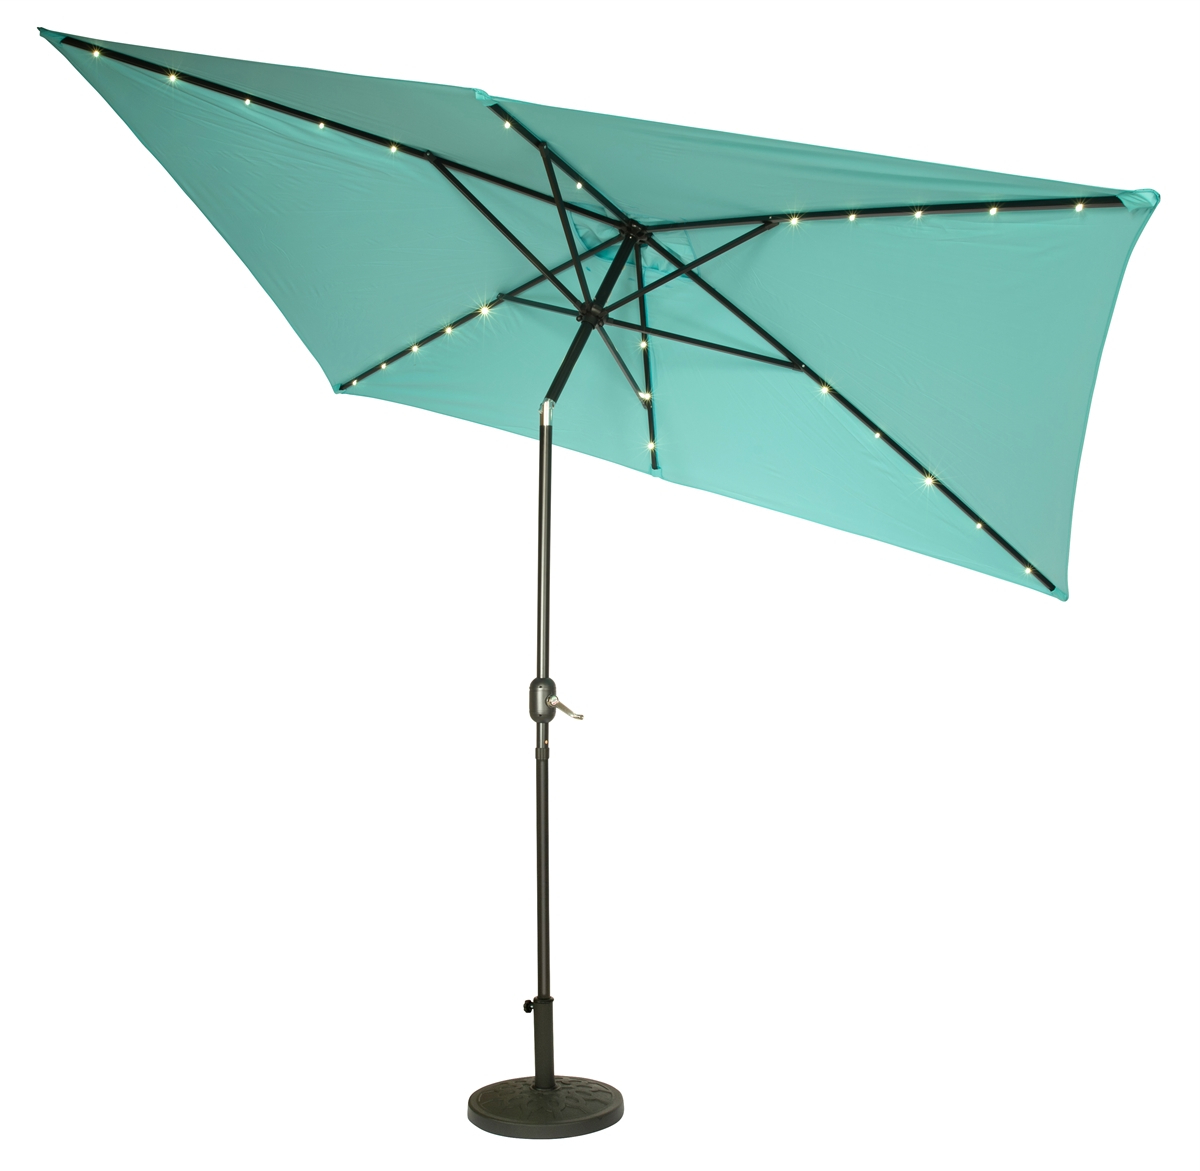 Best And Newest Wiechmann Market Sunbrella Umbrellas With Pretty Rectangle Umbrella Akzprt Akz Plus Cantilever Lowe's Patio (Gallery 19 of 20)